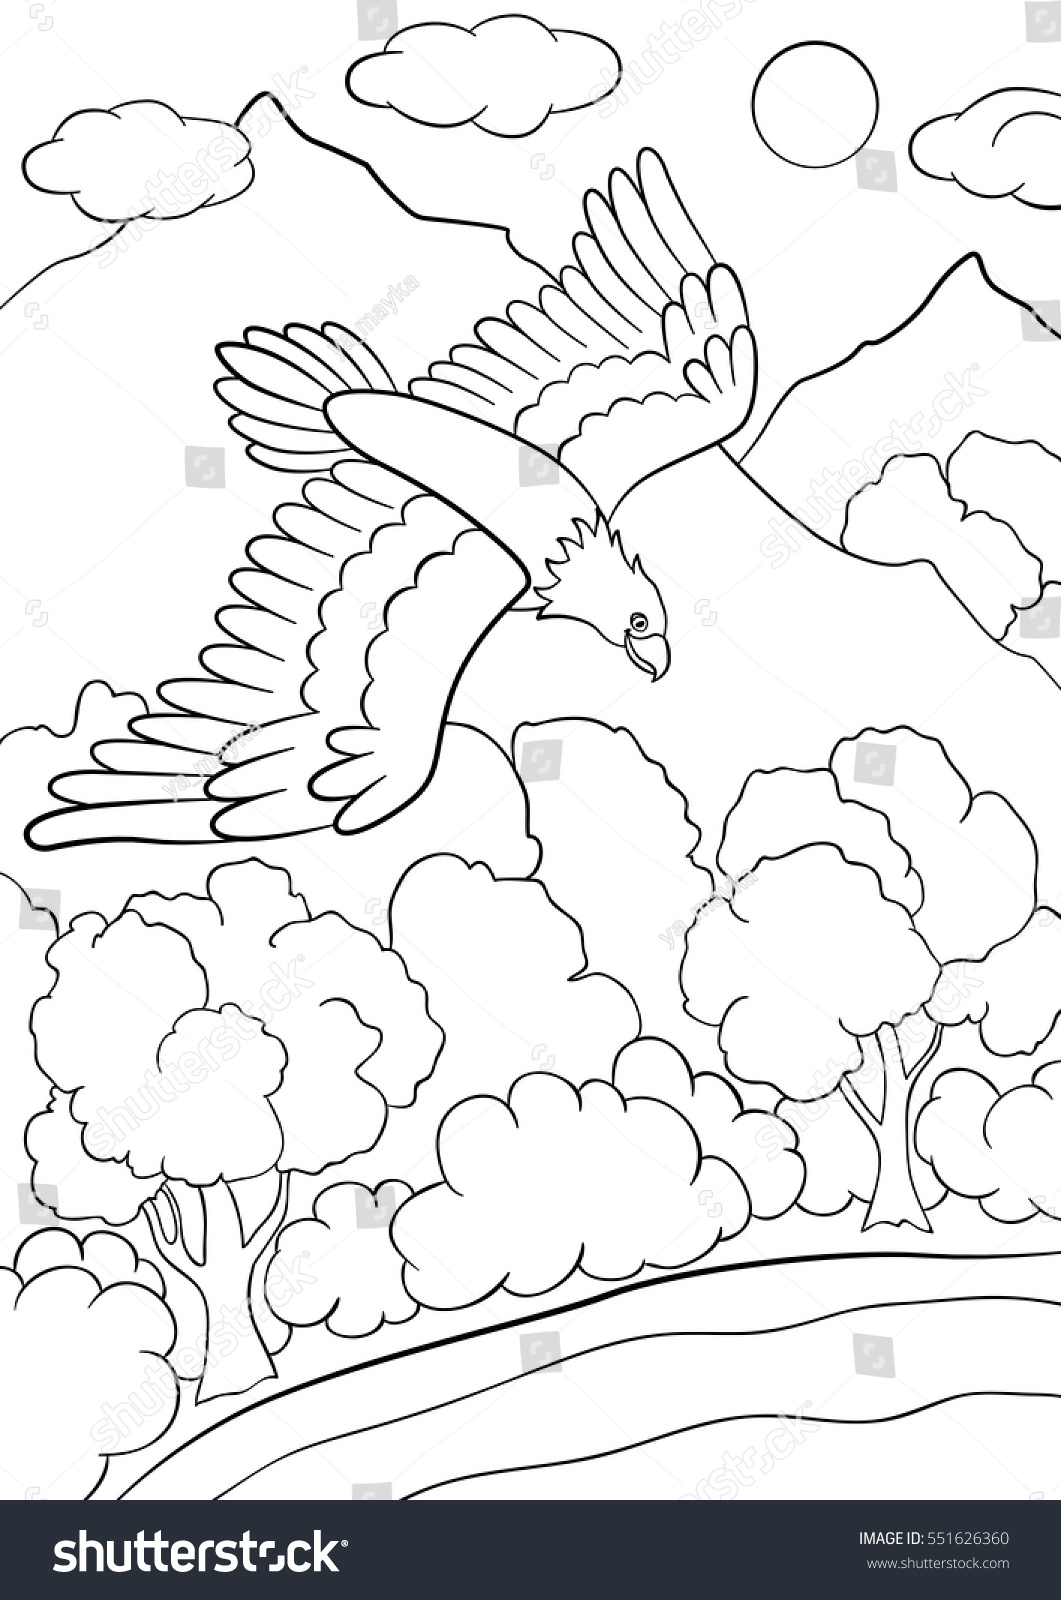 Coloring Pages Wild Birds Cute Eagle Stock Vector 551626360 ...